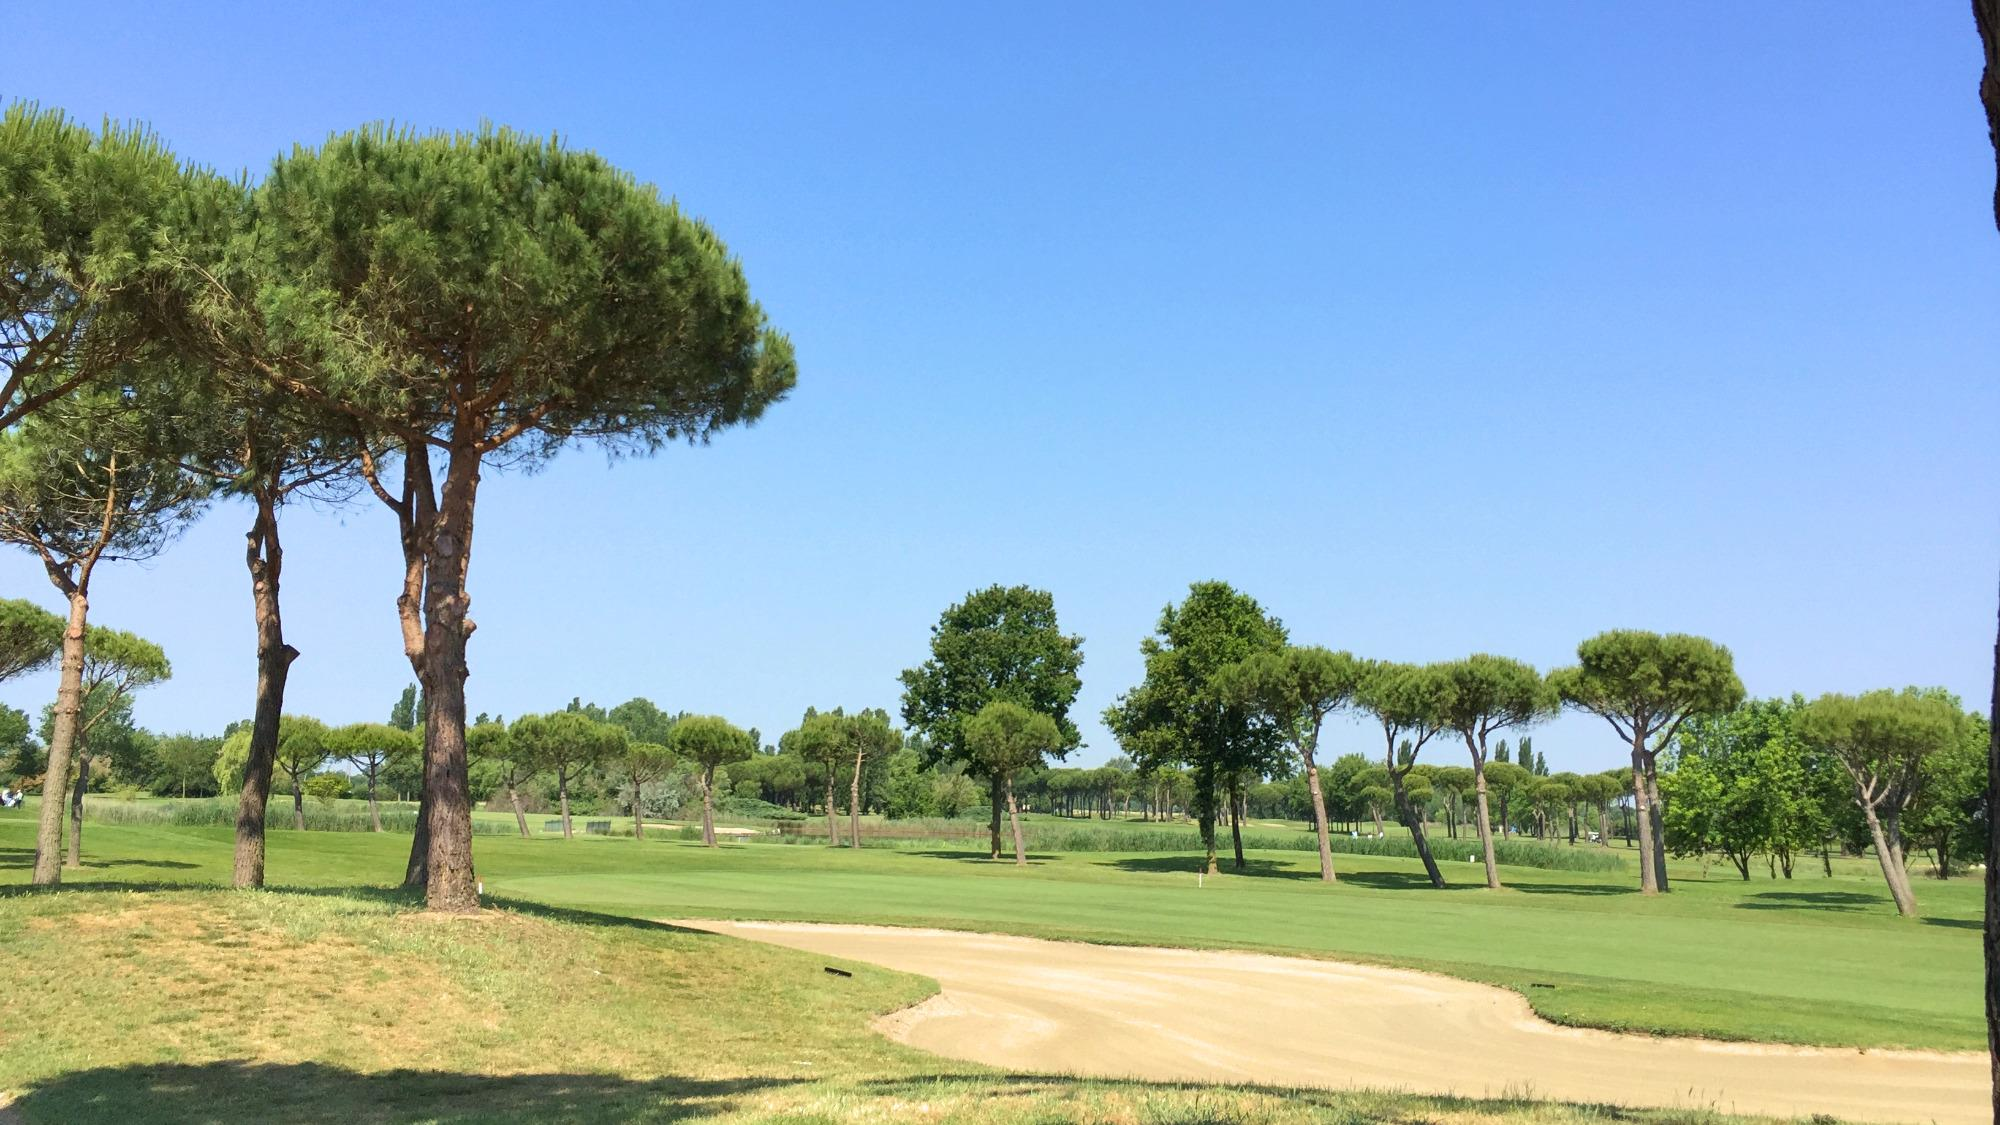 The Adriatic Golf Club Cervia's picturesque golf course situated in impressive Northern Italy.